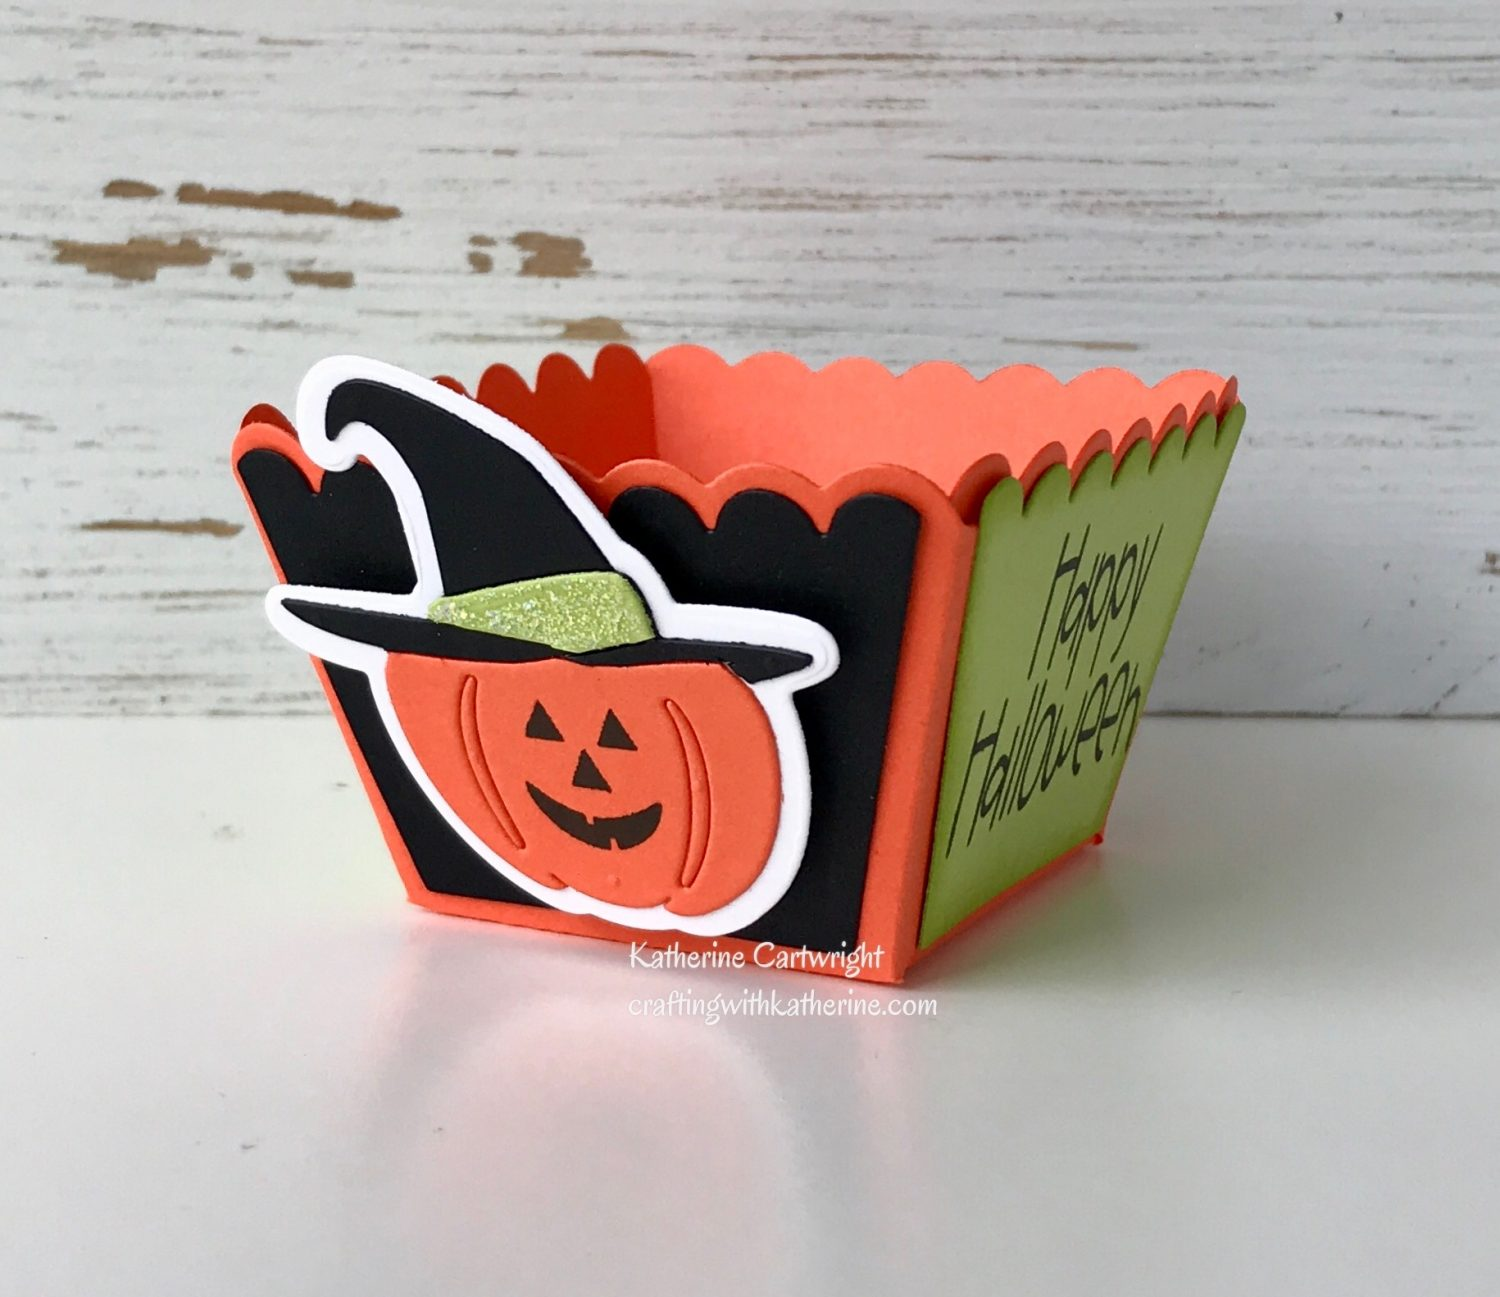 Treat Cup die from The Stamps of Life